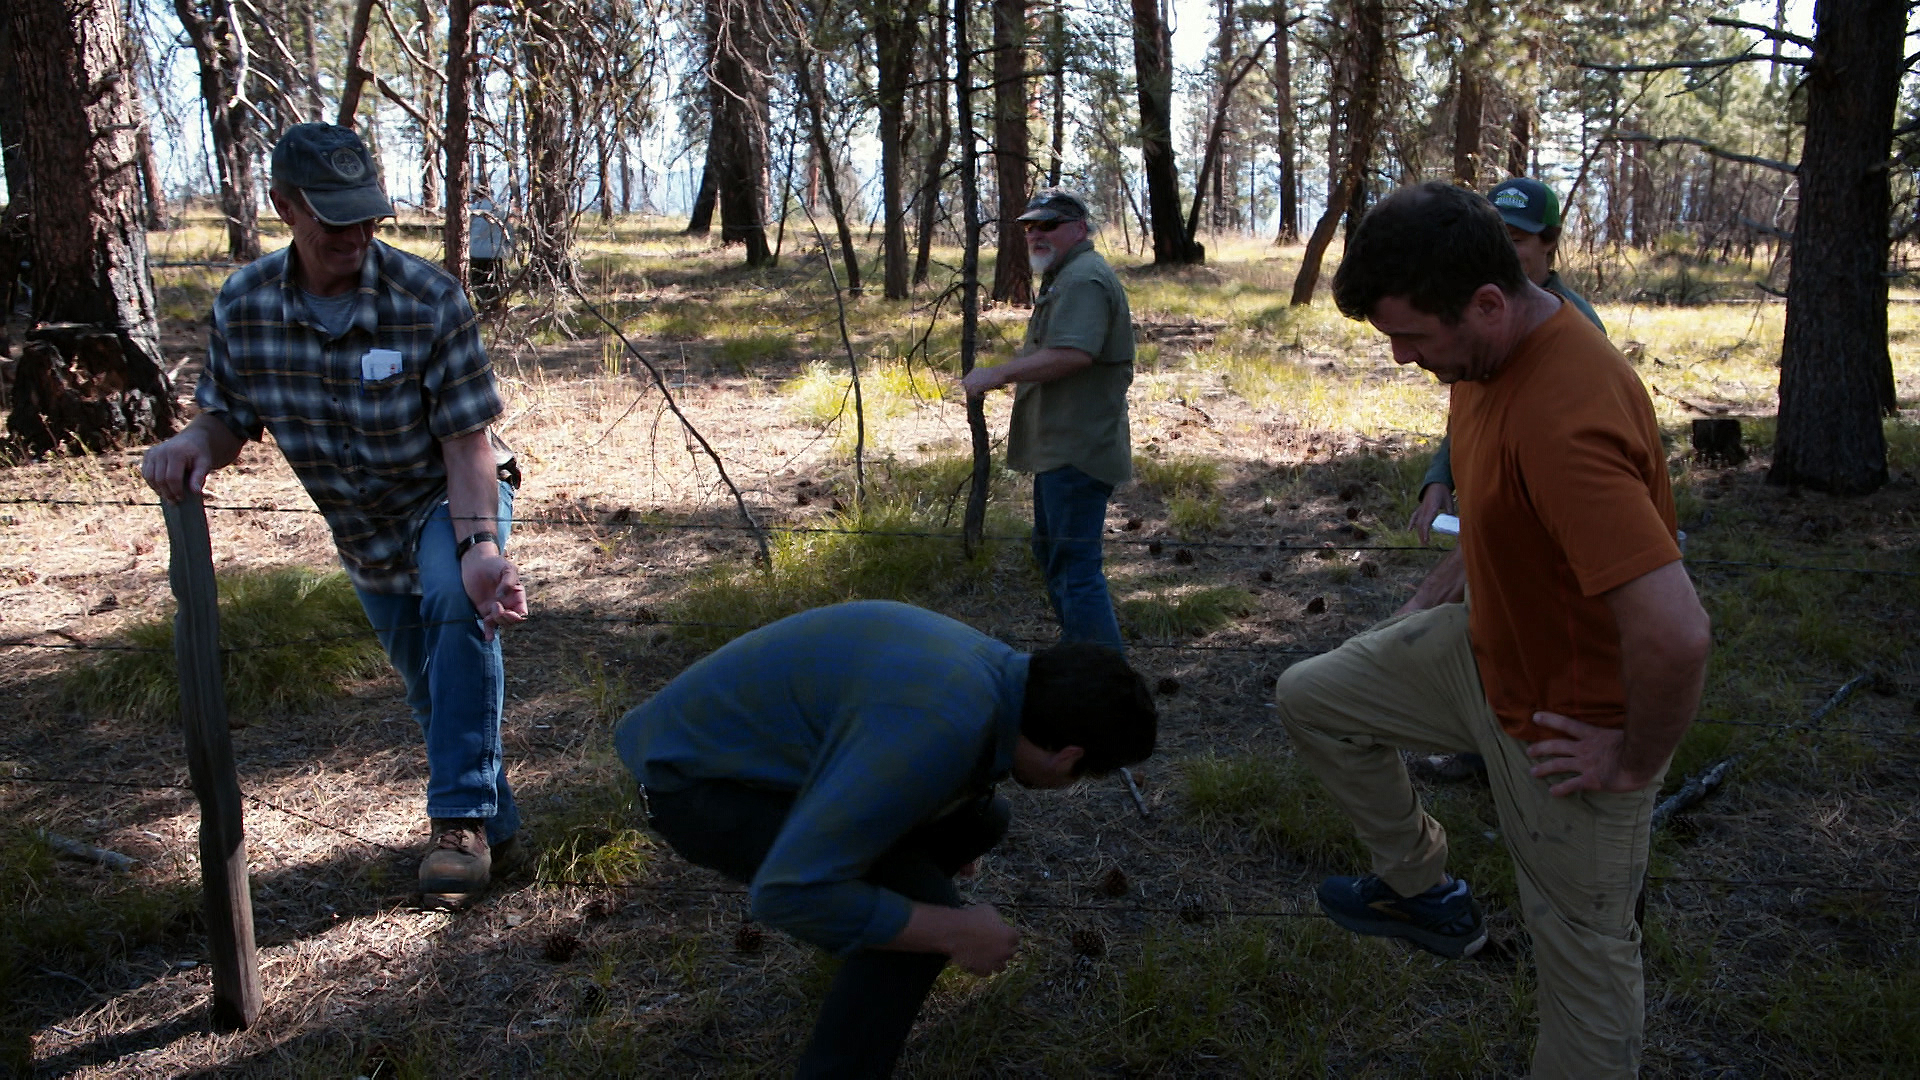 Loggers, environmentalists and scientists try to find common ground in the Malheur National Forest with a forest collaborative group called the Blue Mountains Forest Partners.